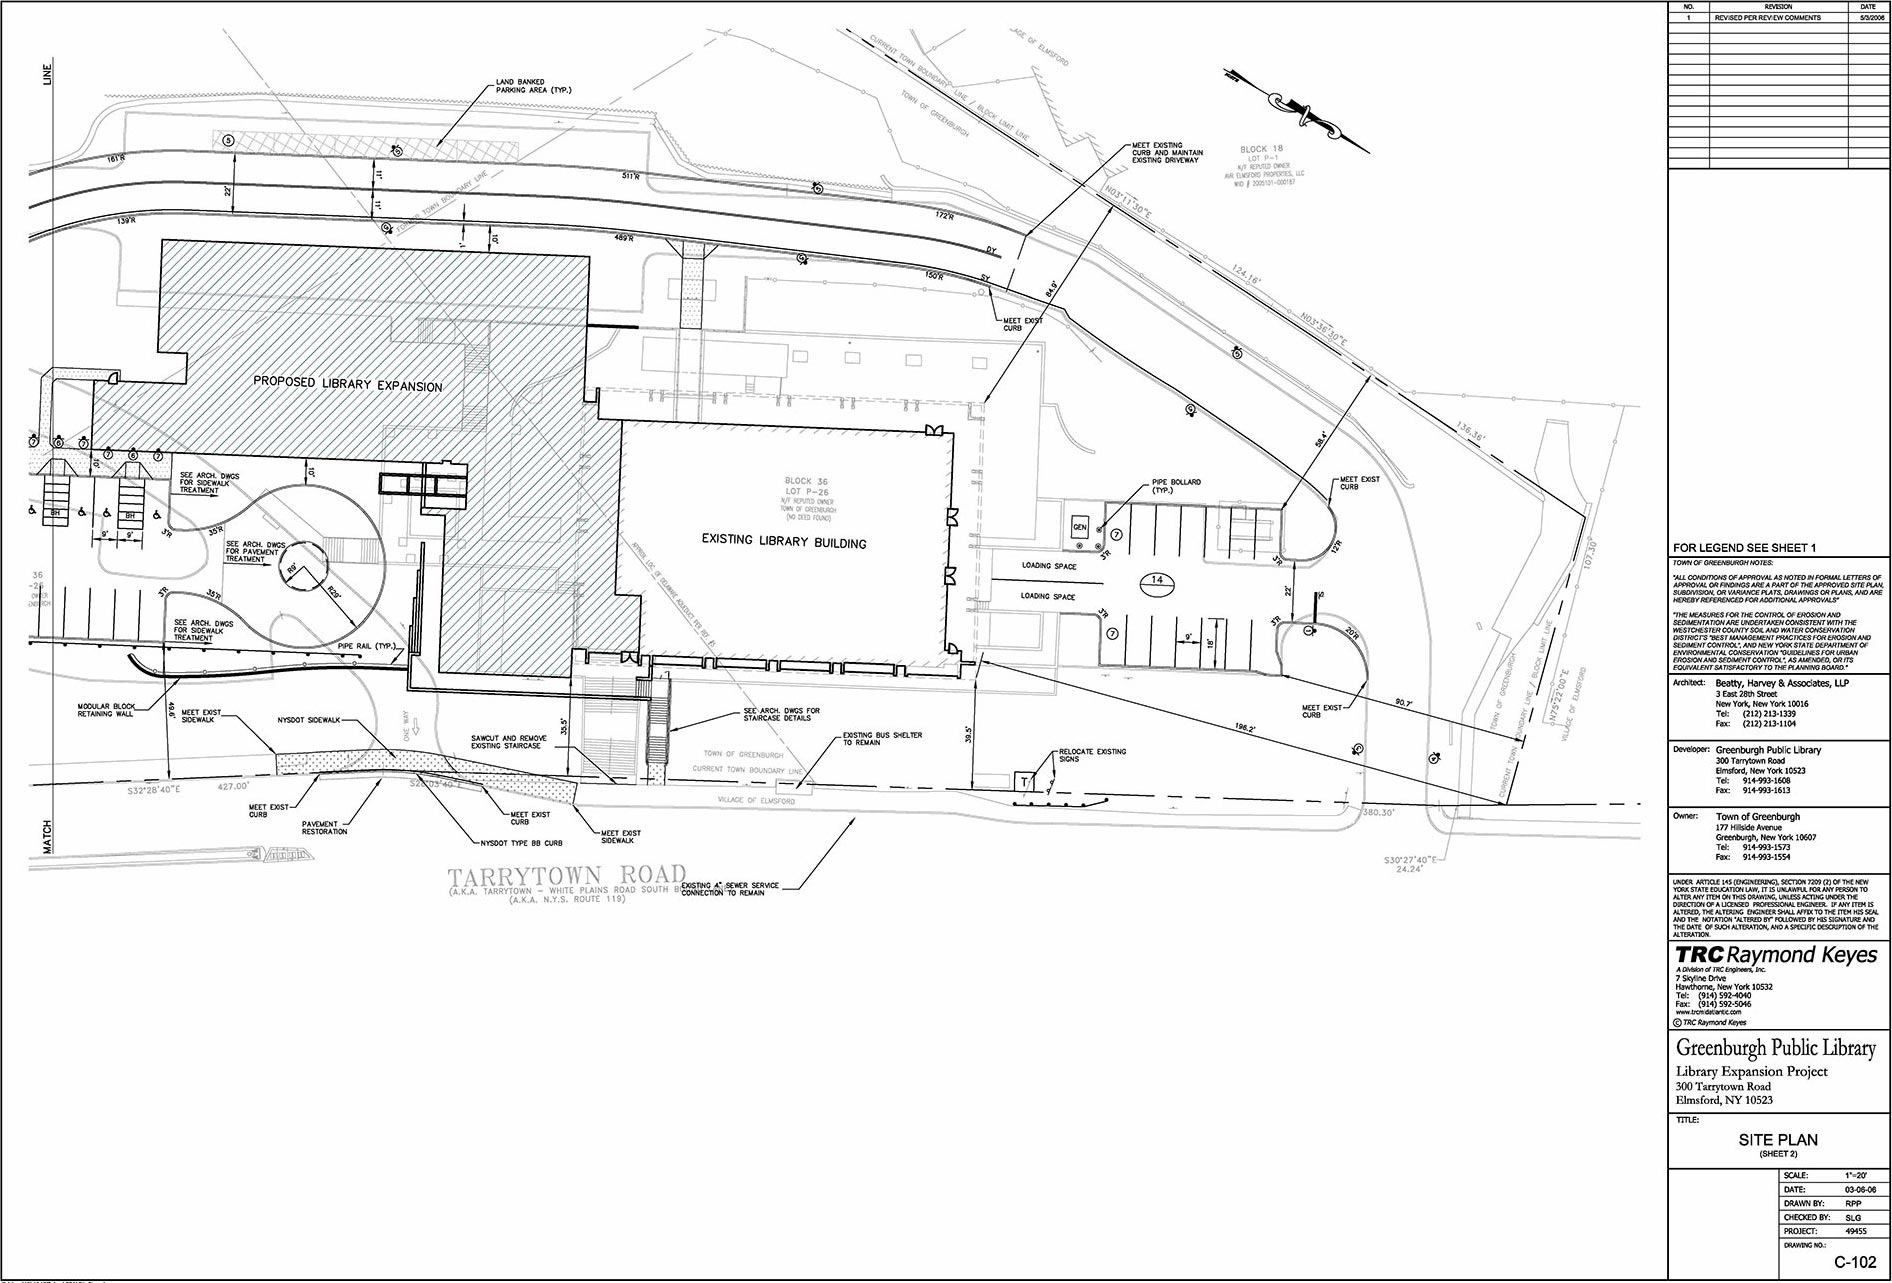 plans of greenburgh public library